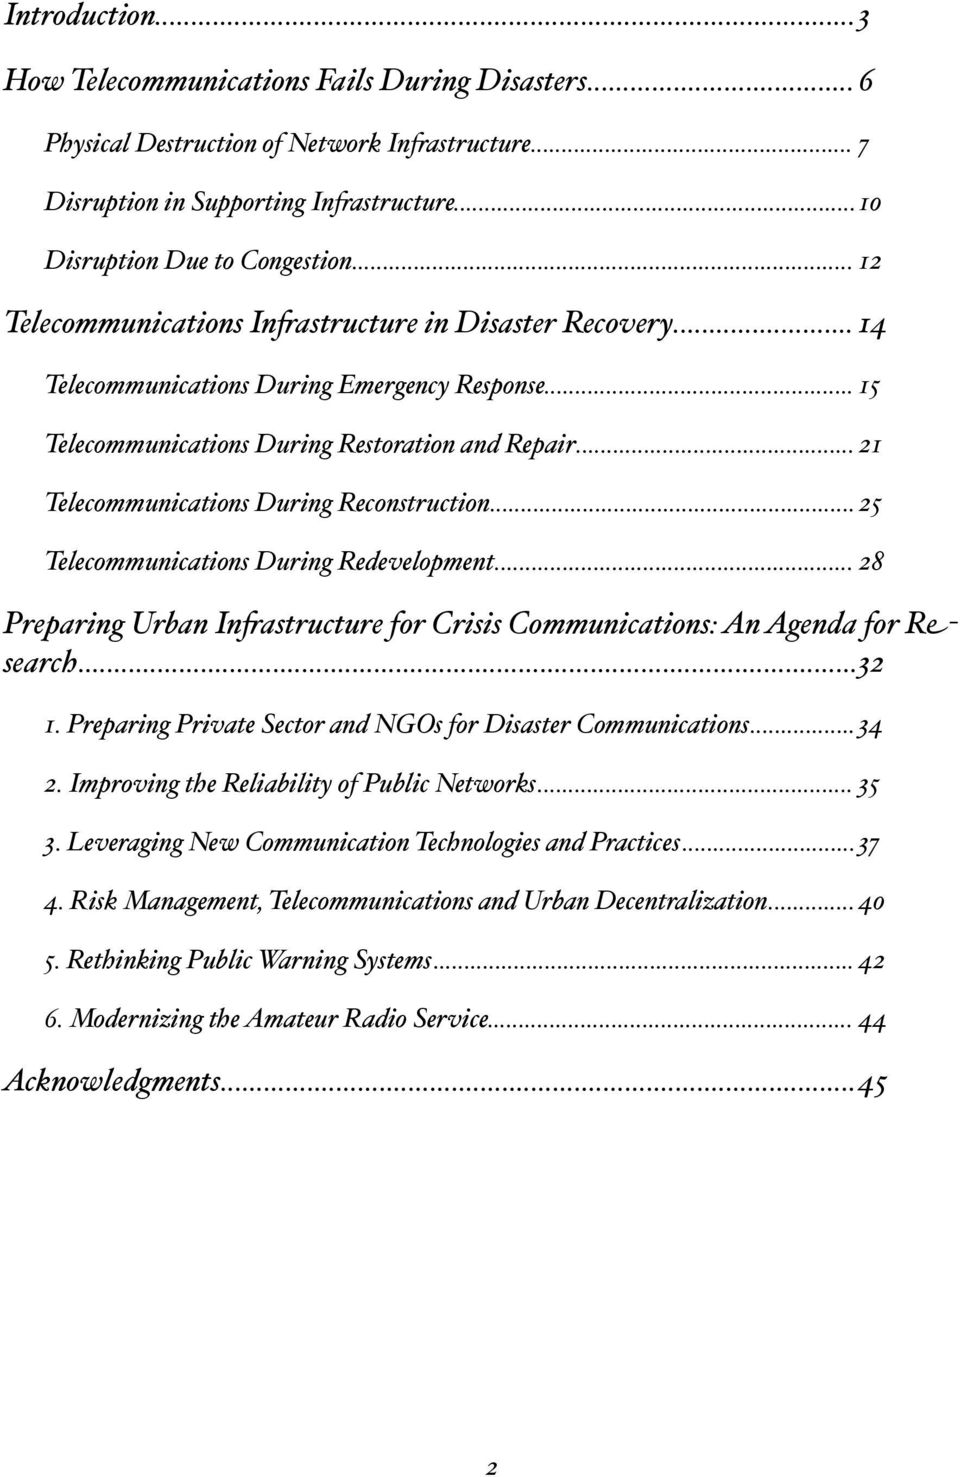 ".. 21 Telecommunications During Reconstruction... 25 Telecommunications During Redevelopment... 28 Preparing Urban In""astructure for Crisis Communications: An Agenda for R#- search... 32 1."